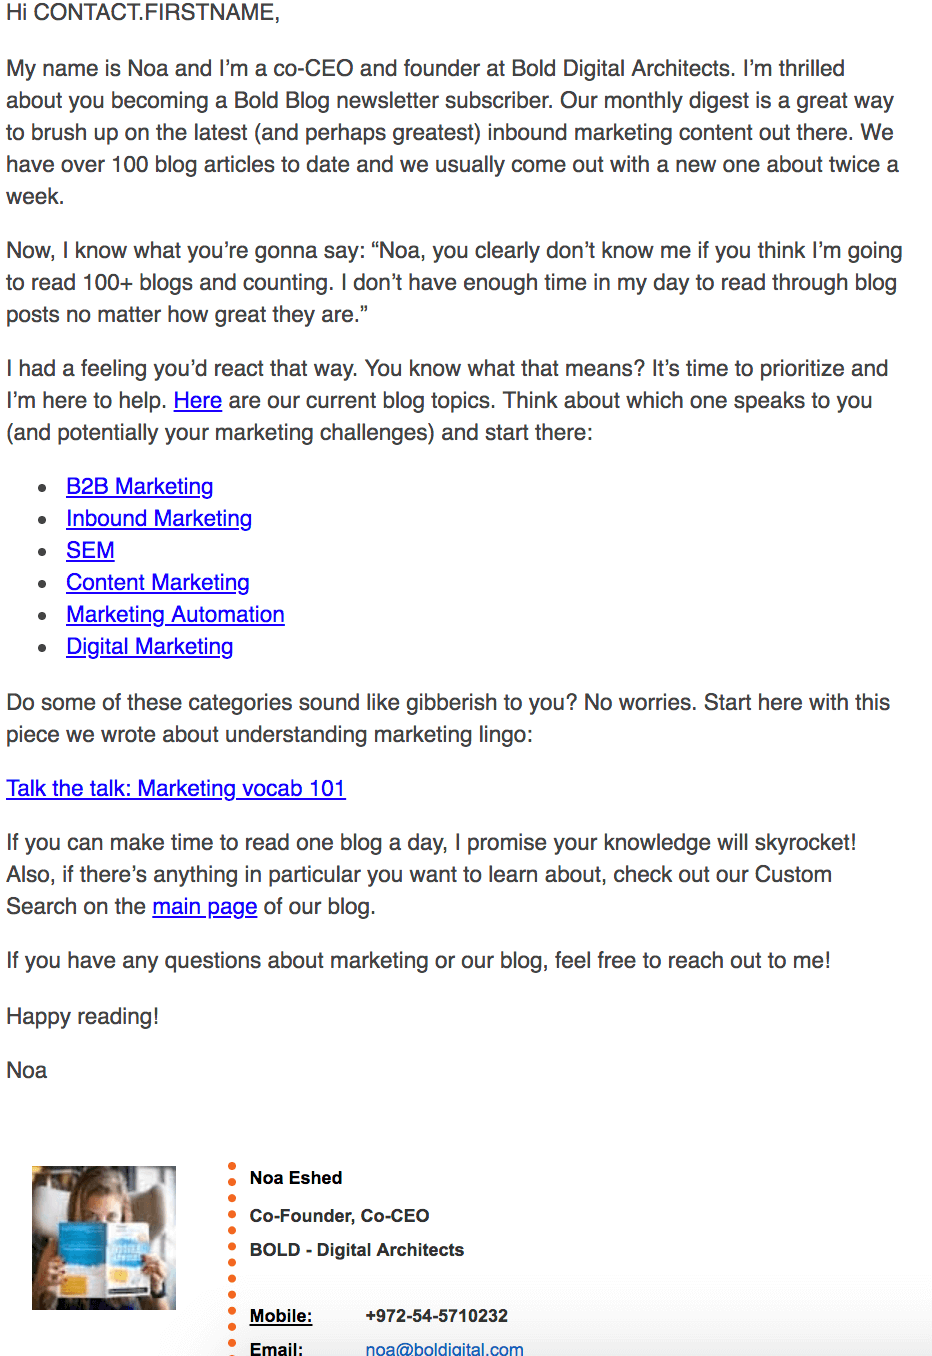 an example of an email a new blog subscriber receives